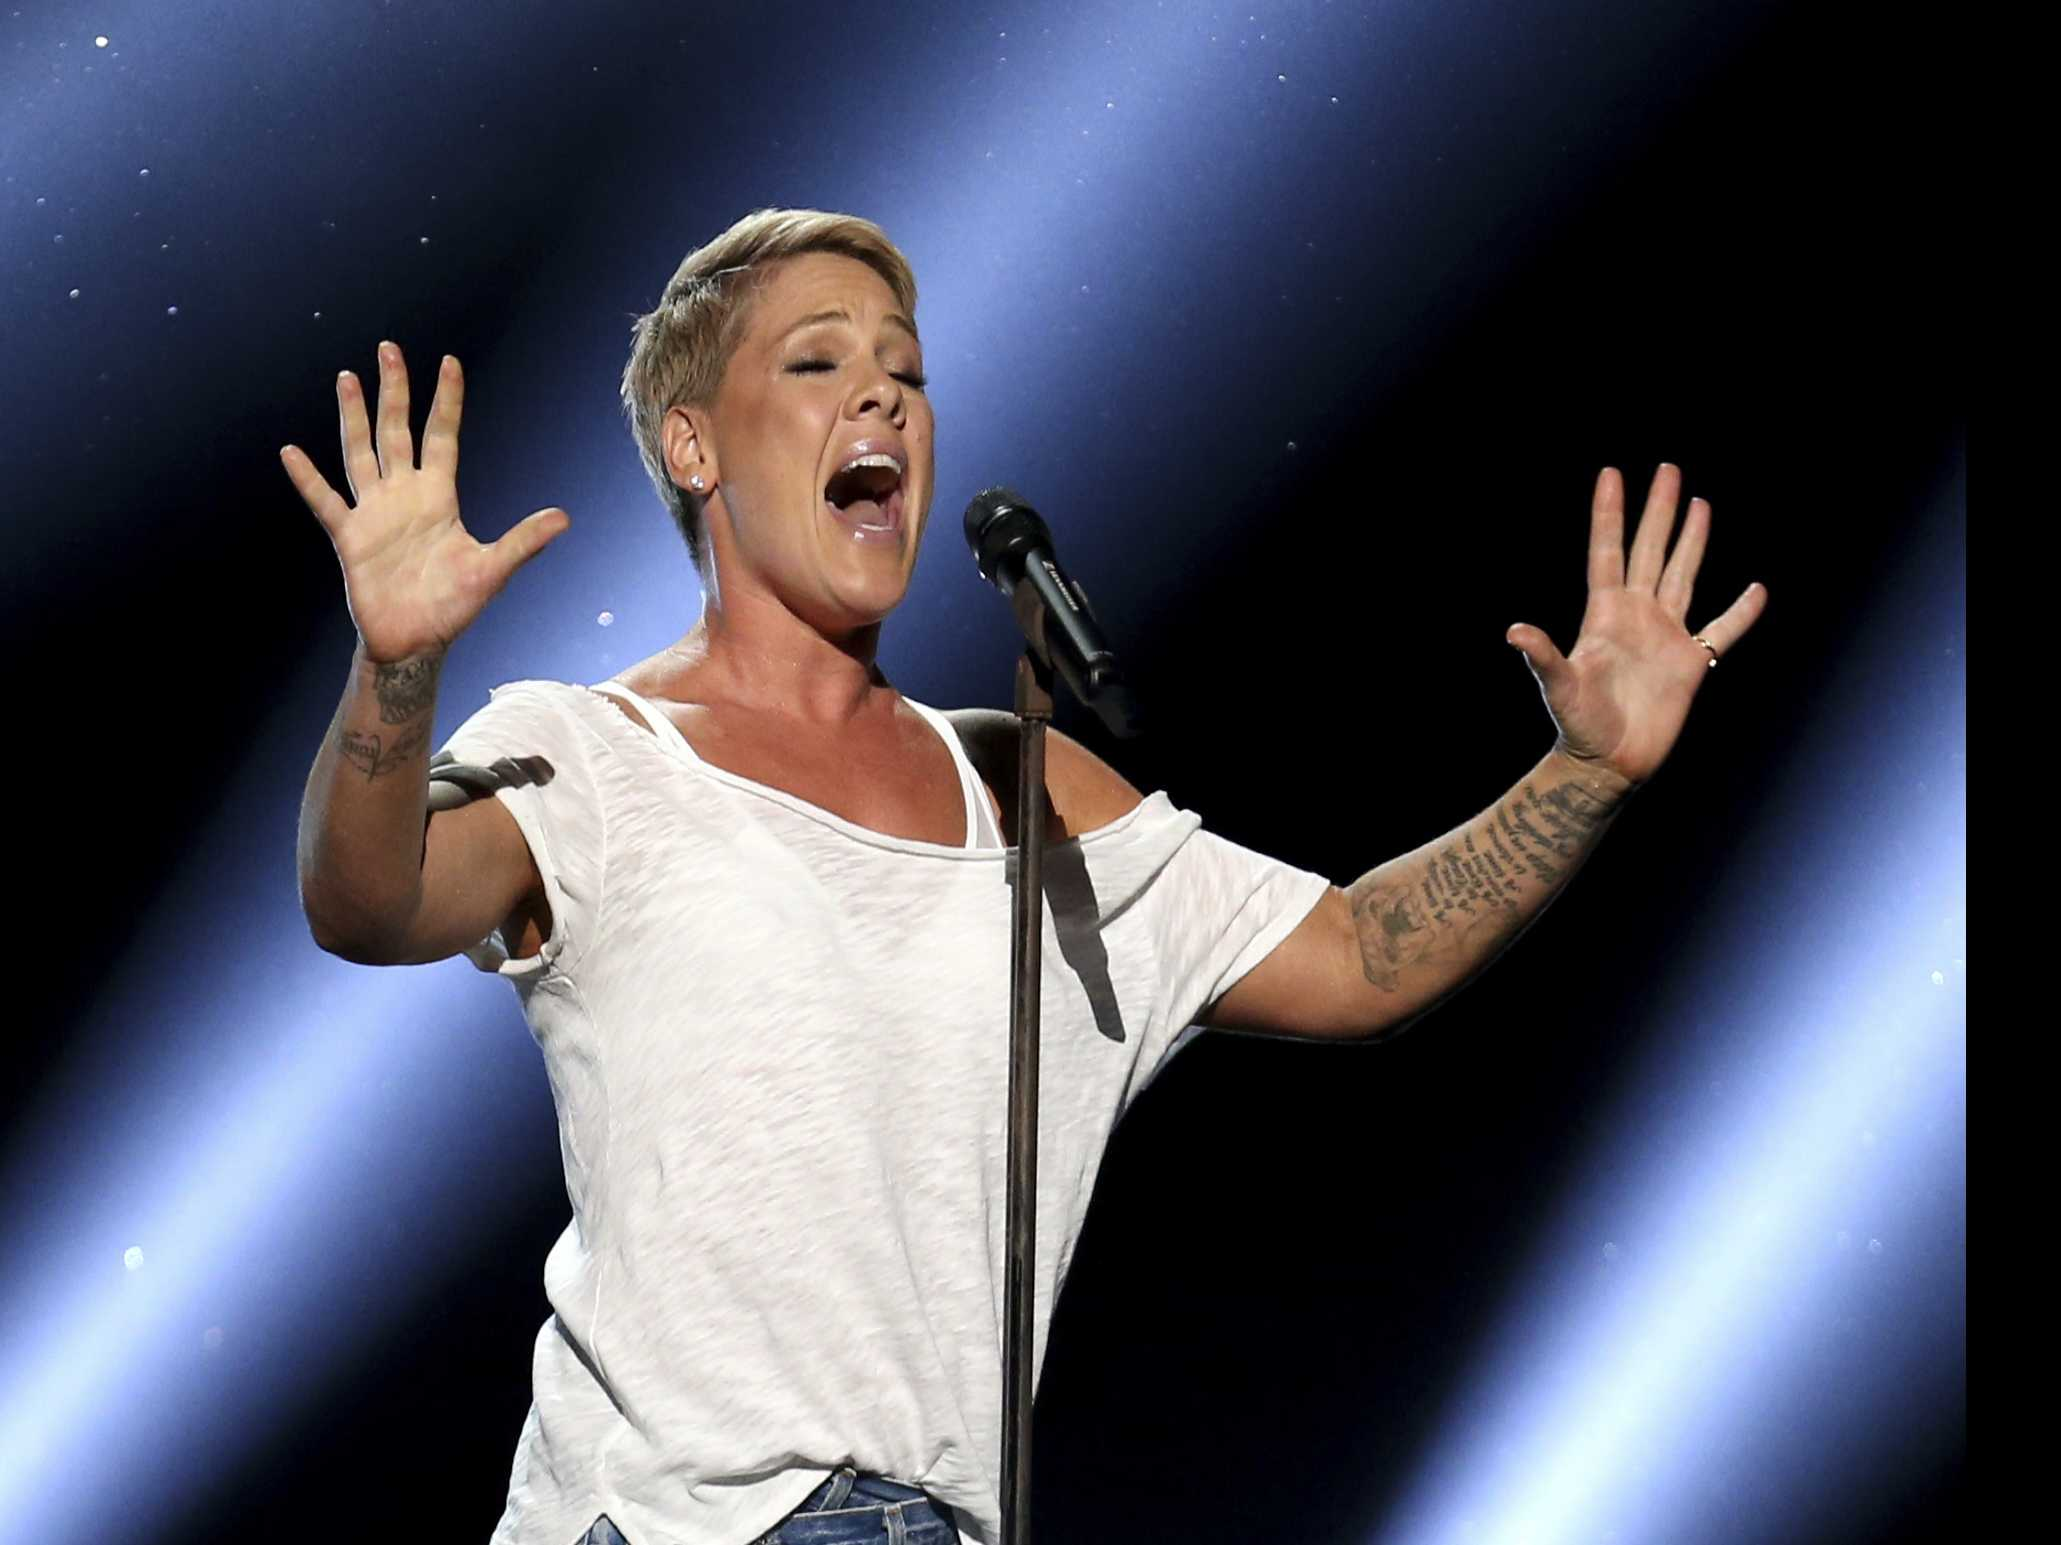 P!nk Cancels 4th Sydney Show, Vows to be on Stage Saturday